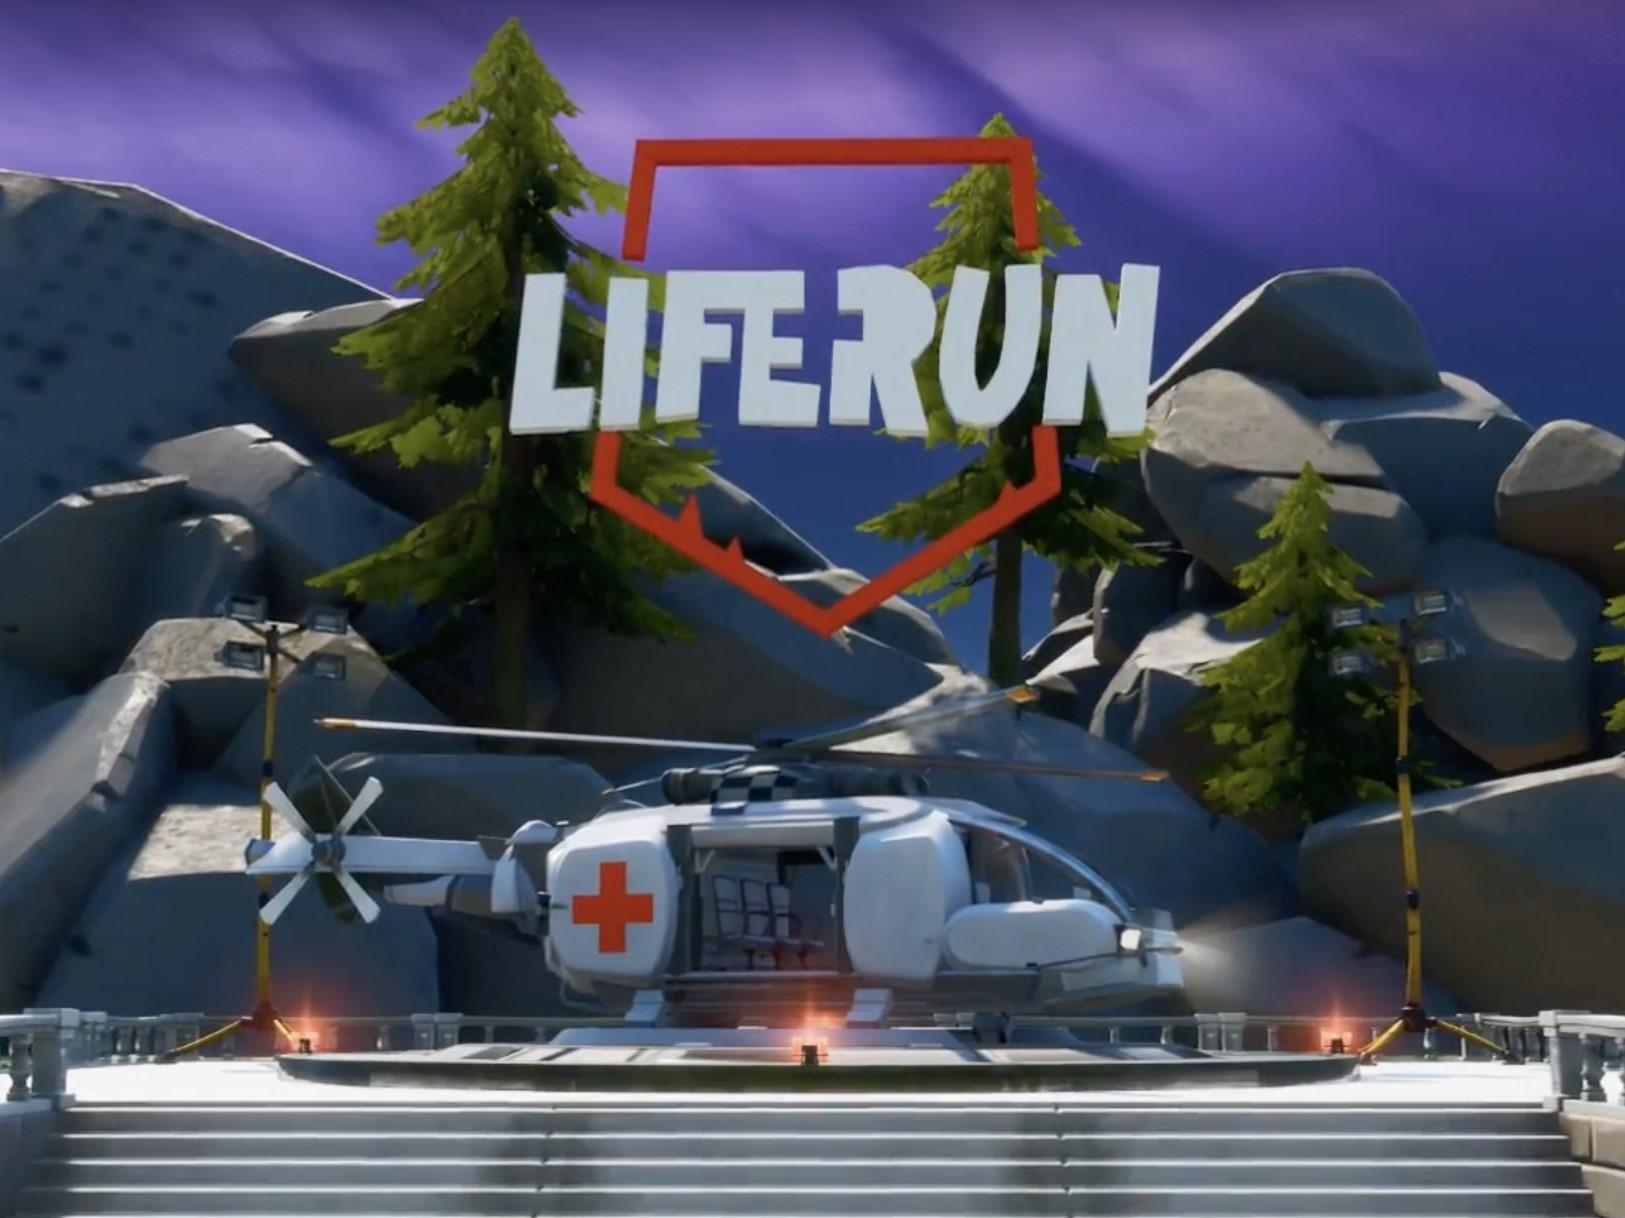 Fortnite update: New creative mode LifeRun lets you save lives rather than kill people